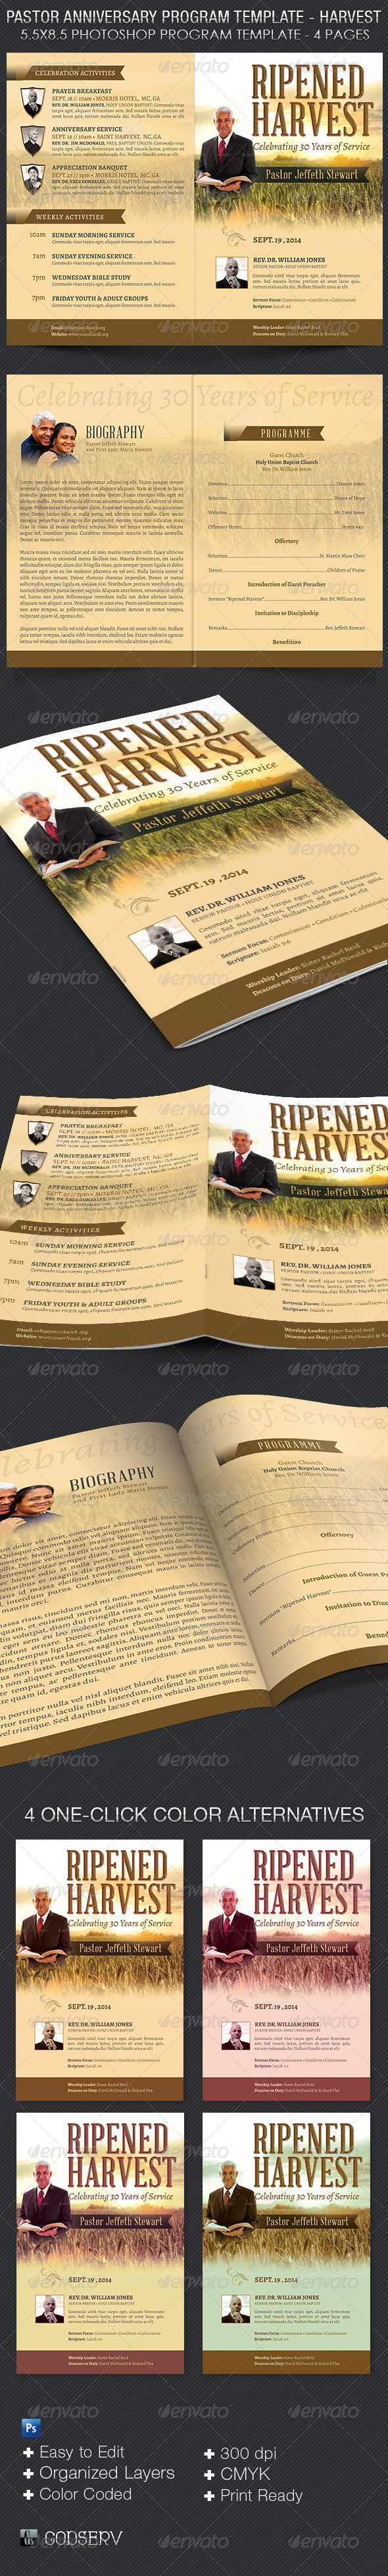 Pastor Anniversary Program Template - Harvest - $7.00 The Pastor Anniversary Service Program Template – Harvest is for church pastor appreciation or anniversary events with an Harvest or Ministry focused theme. Can also be used for funeral program, sunday morning bulletins and more.